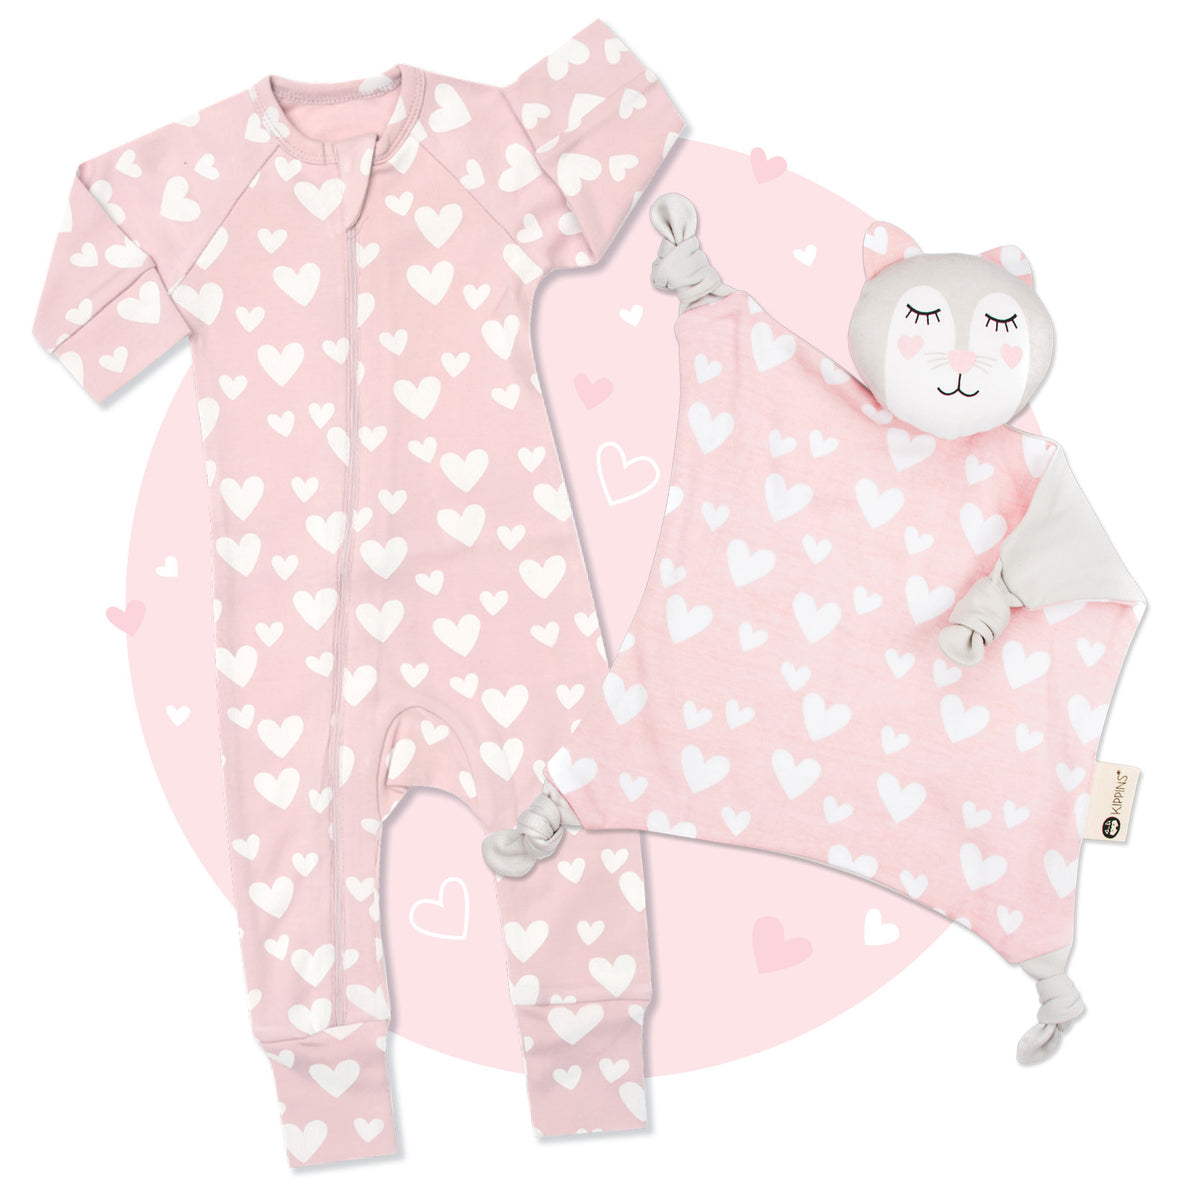 Kitty Kip 'n' Cuddle Sleep Kit - Long Sleeve